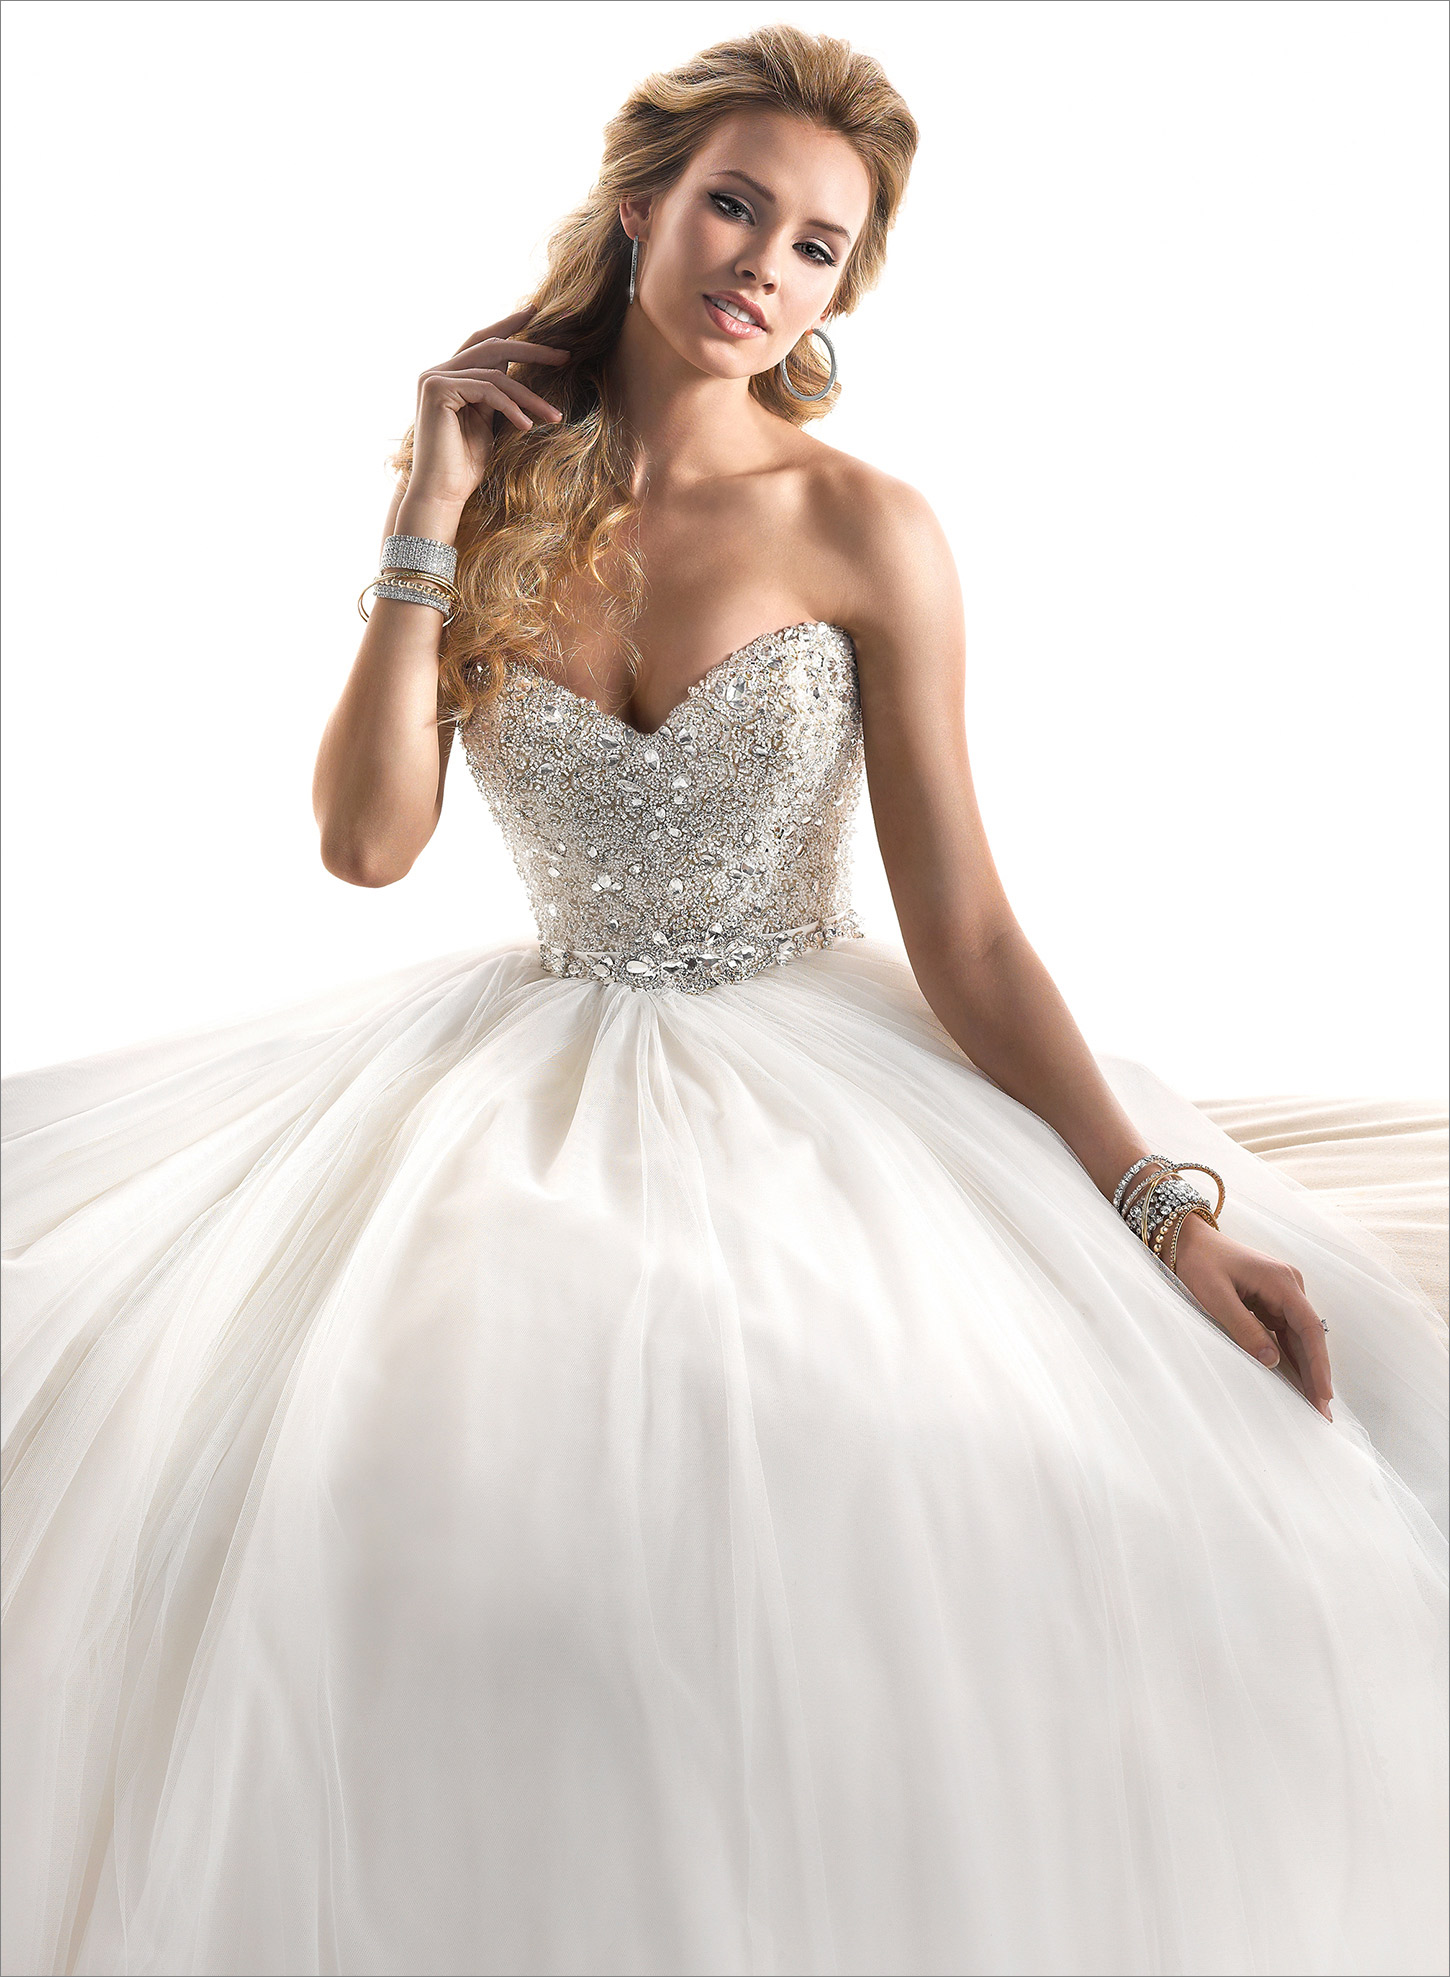 maggie-scottero-wedding-dresses-2014-1-01302014